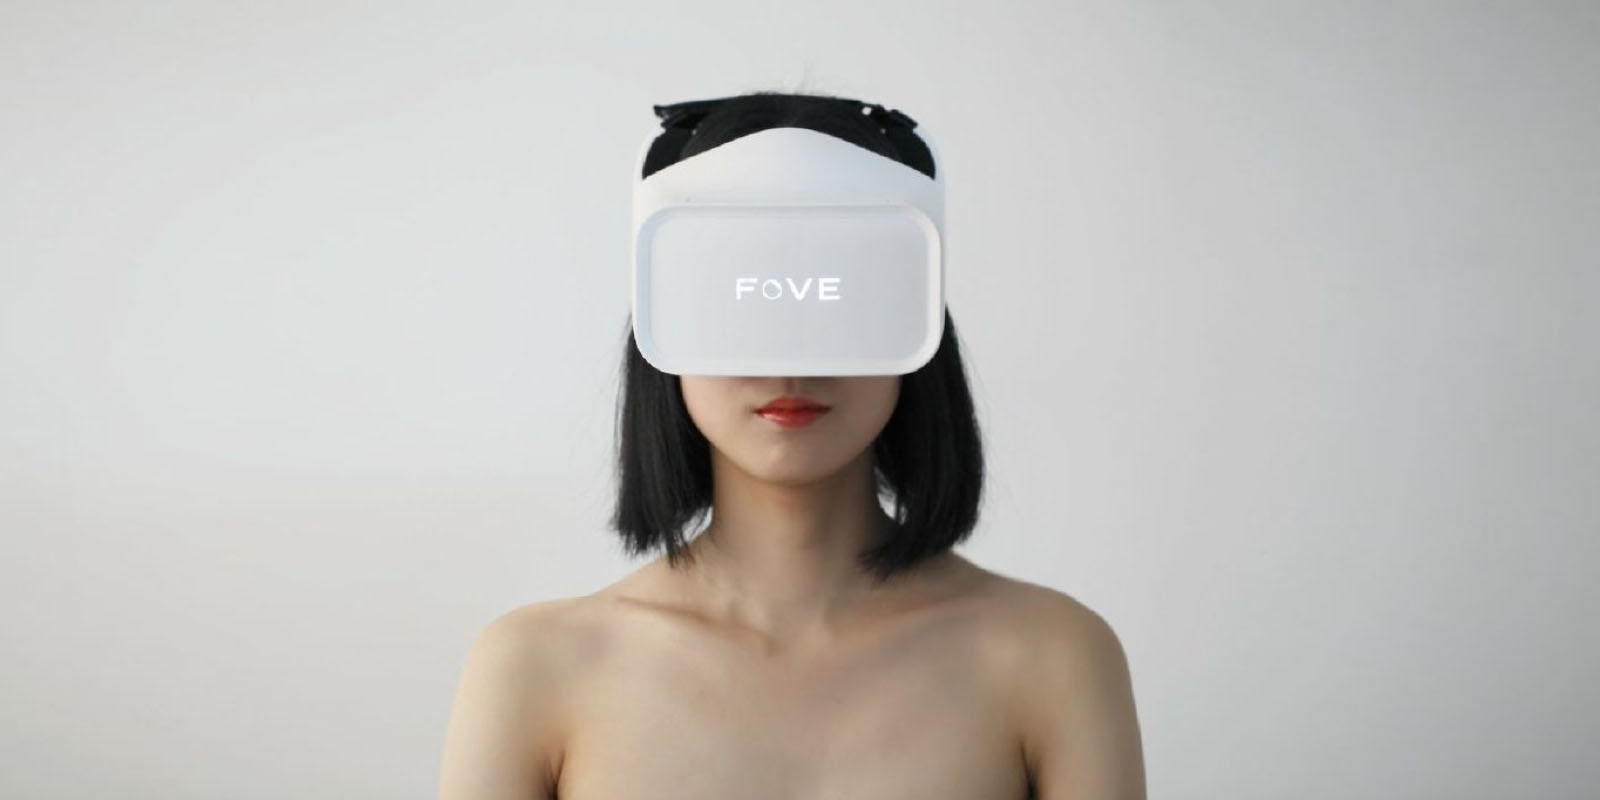 foveated rendering make virtual reality porn hotter fove vr porn blog virtual reality